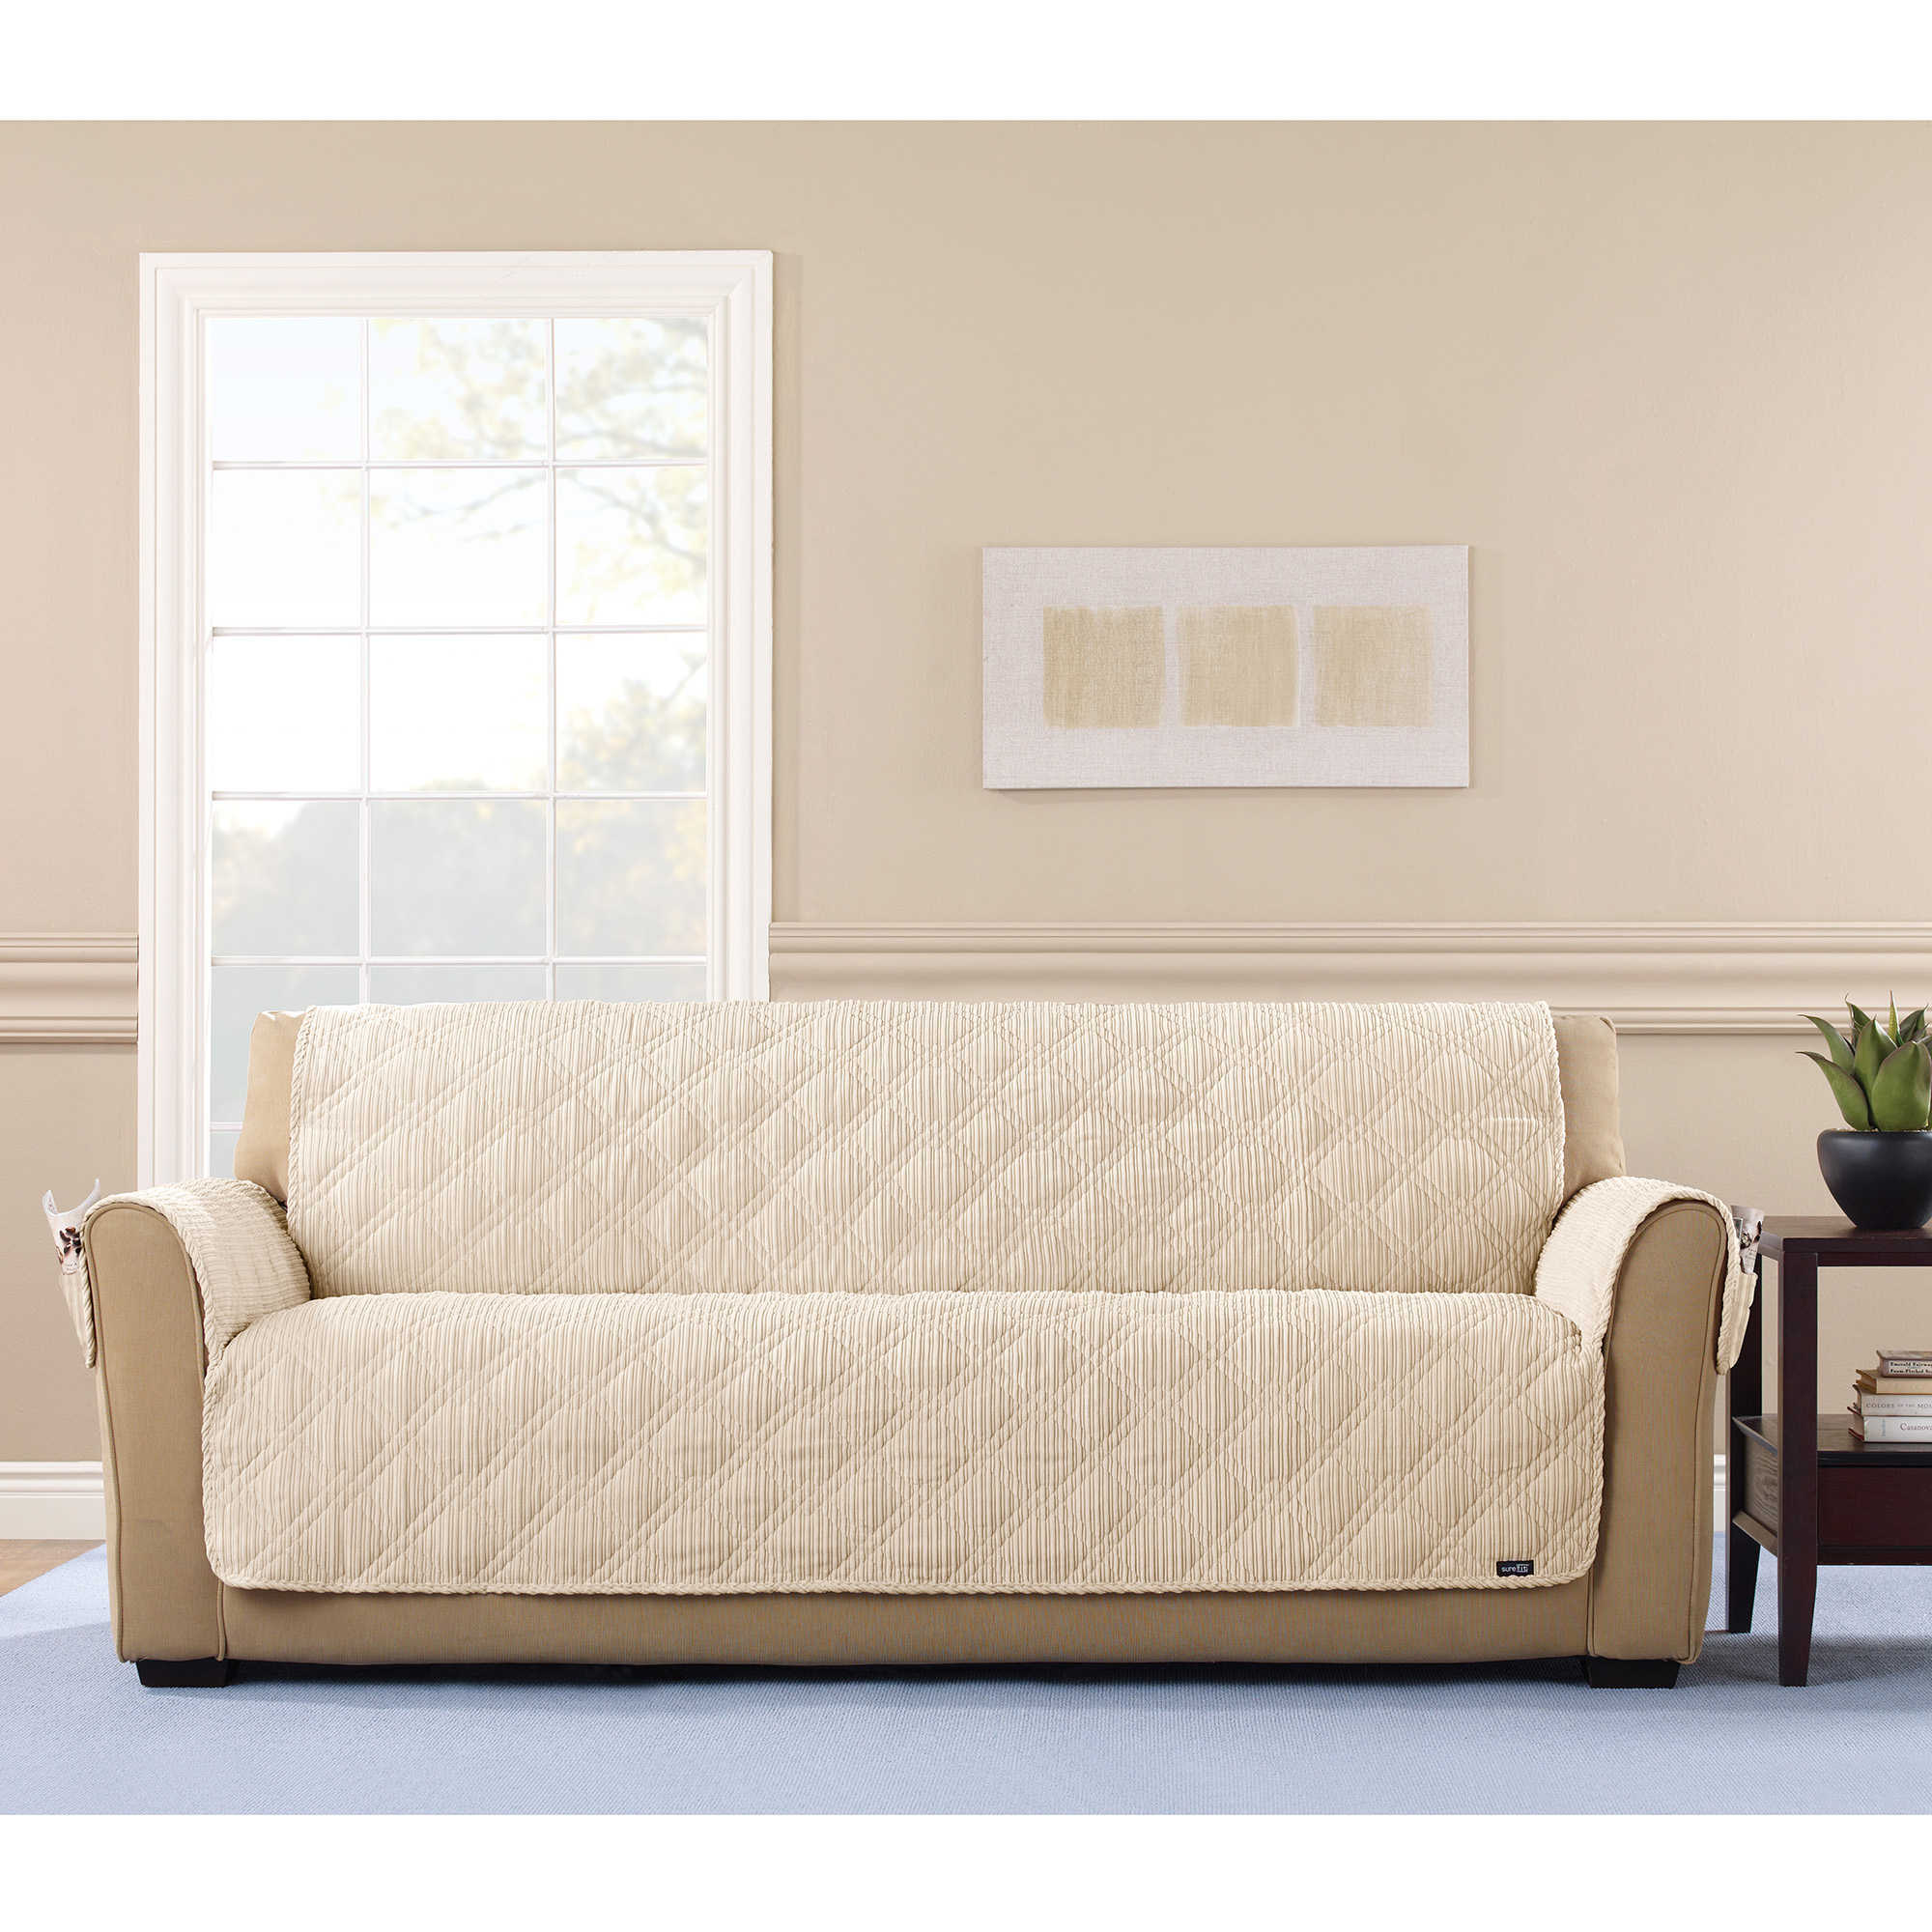 Charmant Shop Sure Fit Wide Wale Corduroy Sofa Throw Furniture Protector   Free  Shipping Today   Overstock.com   17703095